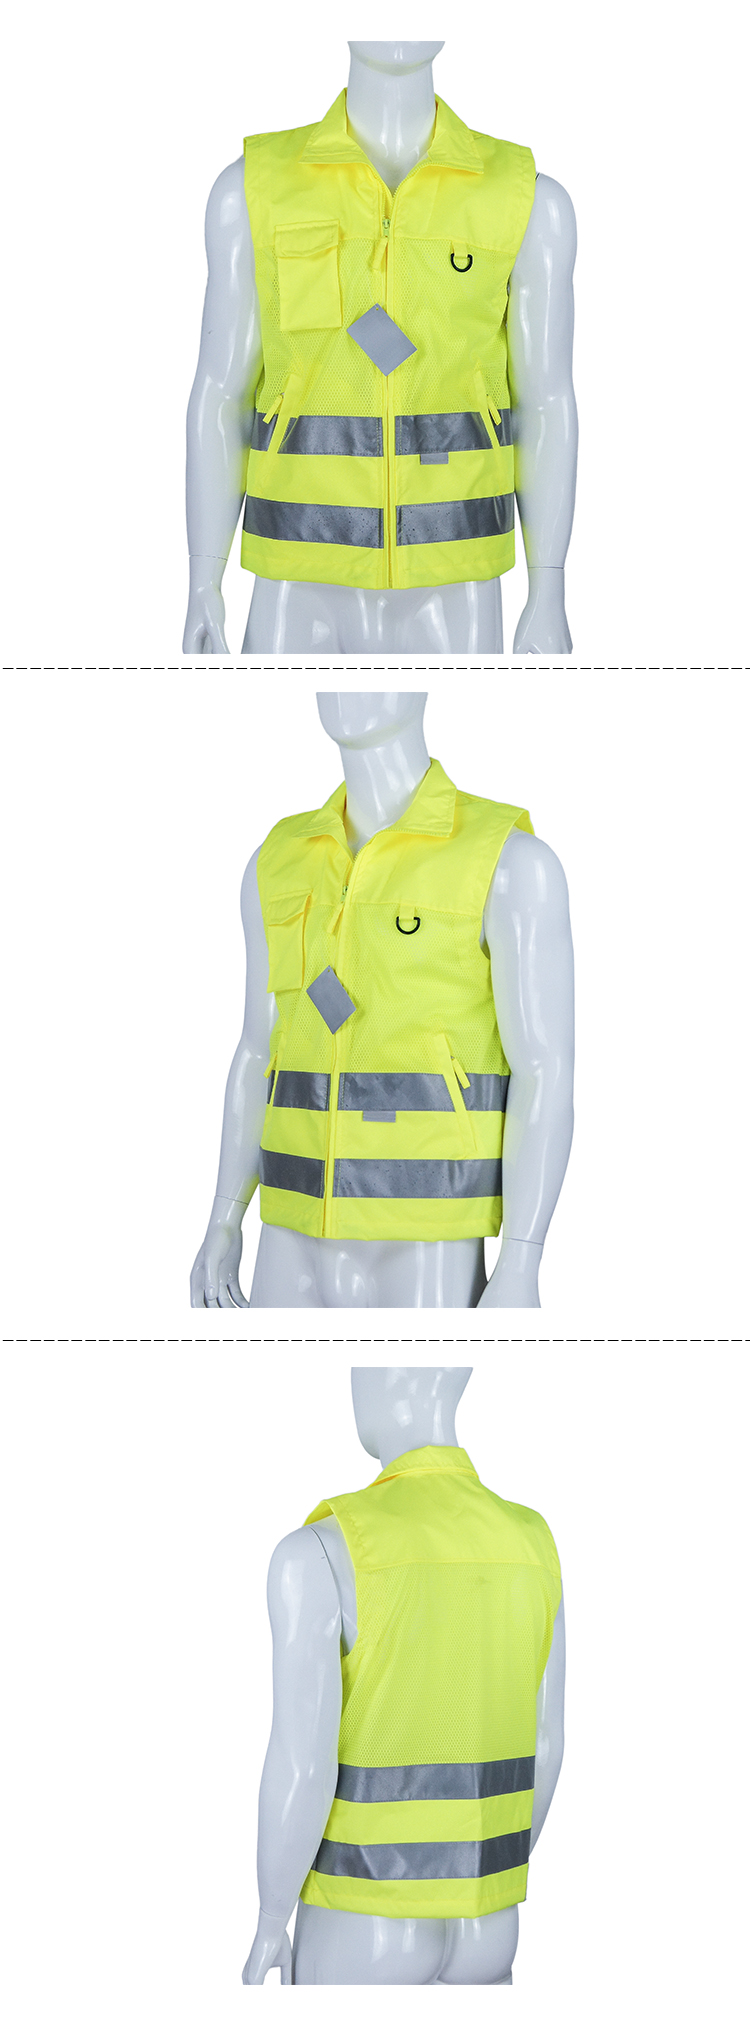 Safety Warning Vest Reflective